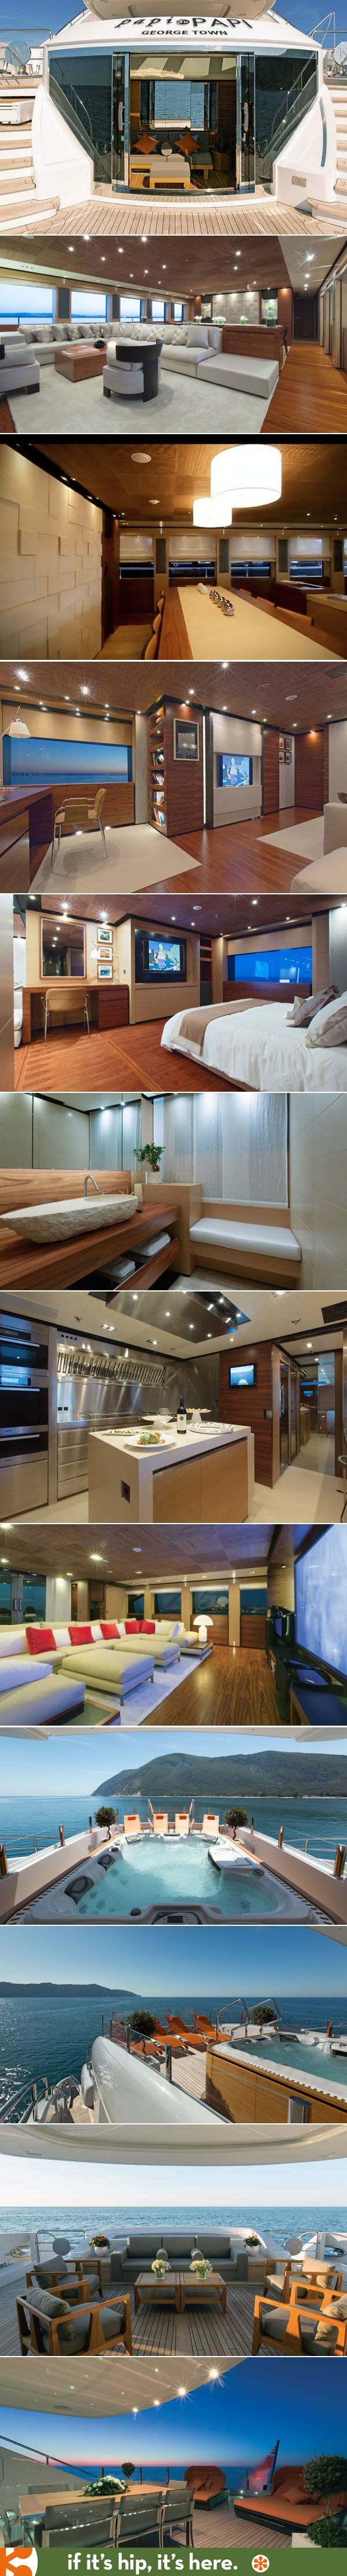 A first look inside the beautifully decorated 164 foot yacht, the Papi du Papi.